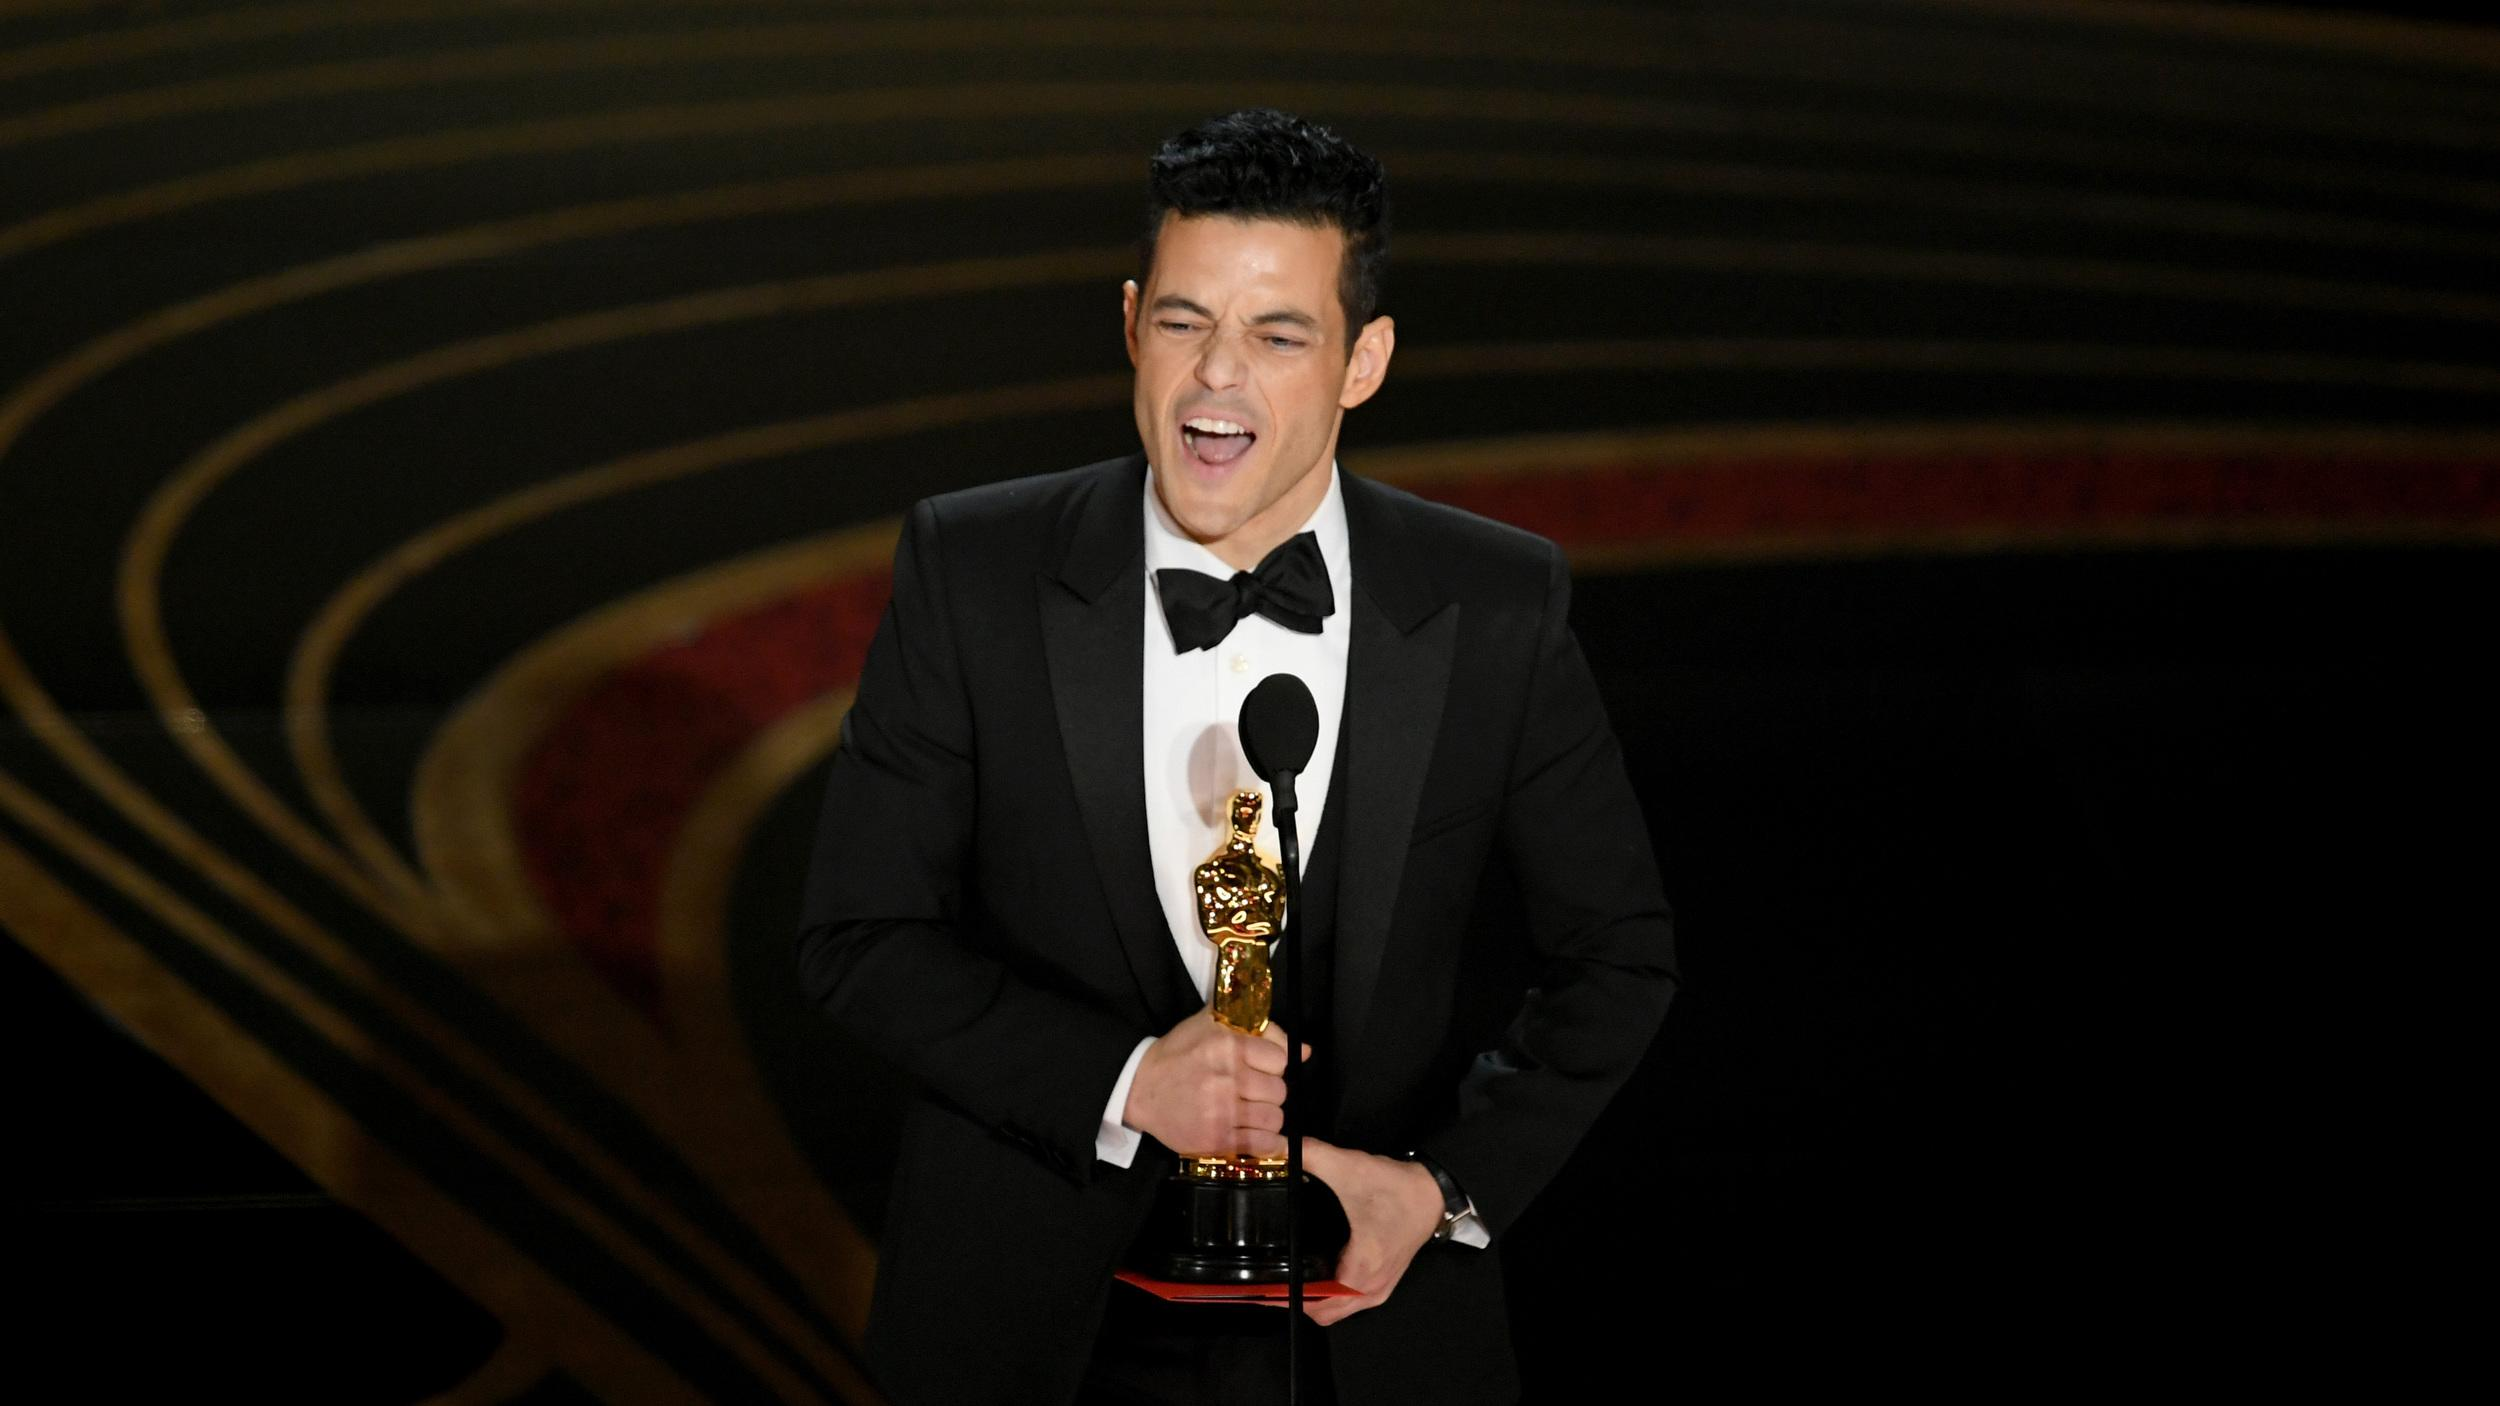 HOLLYWOOD, CALIFORNIA:  (EDITORS NOTE: Retransmission with alternate crop.) Rami Malek accepts the Actor in a Leading Role award for 'Bohemian Rhapsody' onstage during the 91st Annual Academy Awards at Dolby Theatre on February 24, 2019 in Hollywood, California.  (Photo by Kevin Winter/Getty Images)